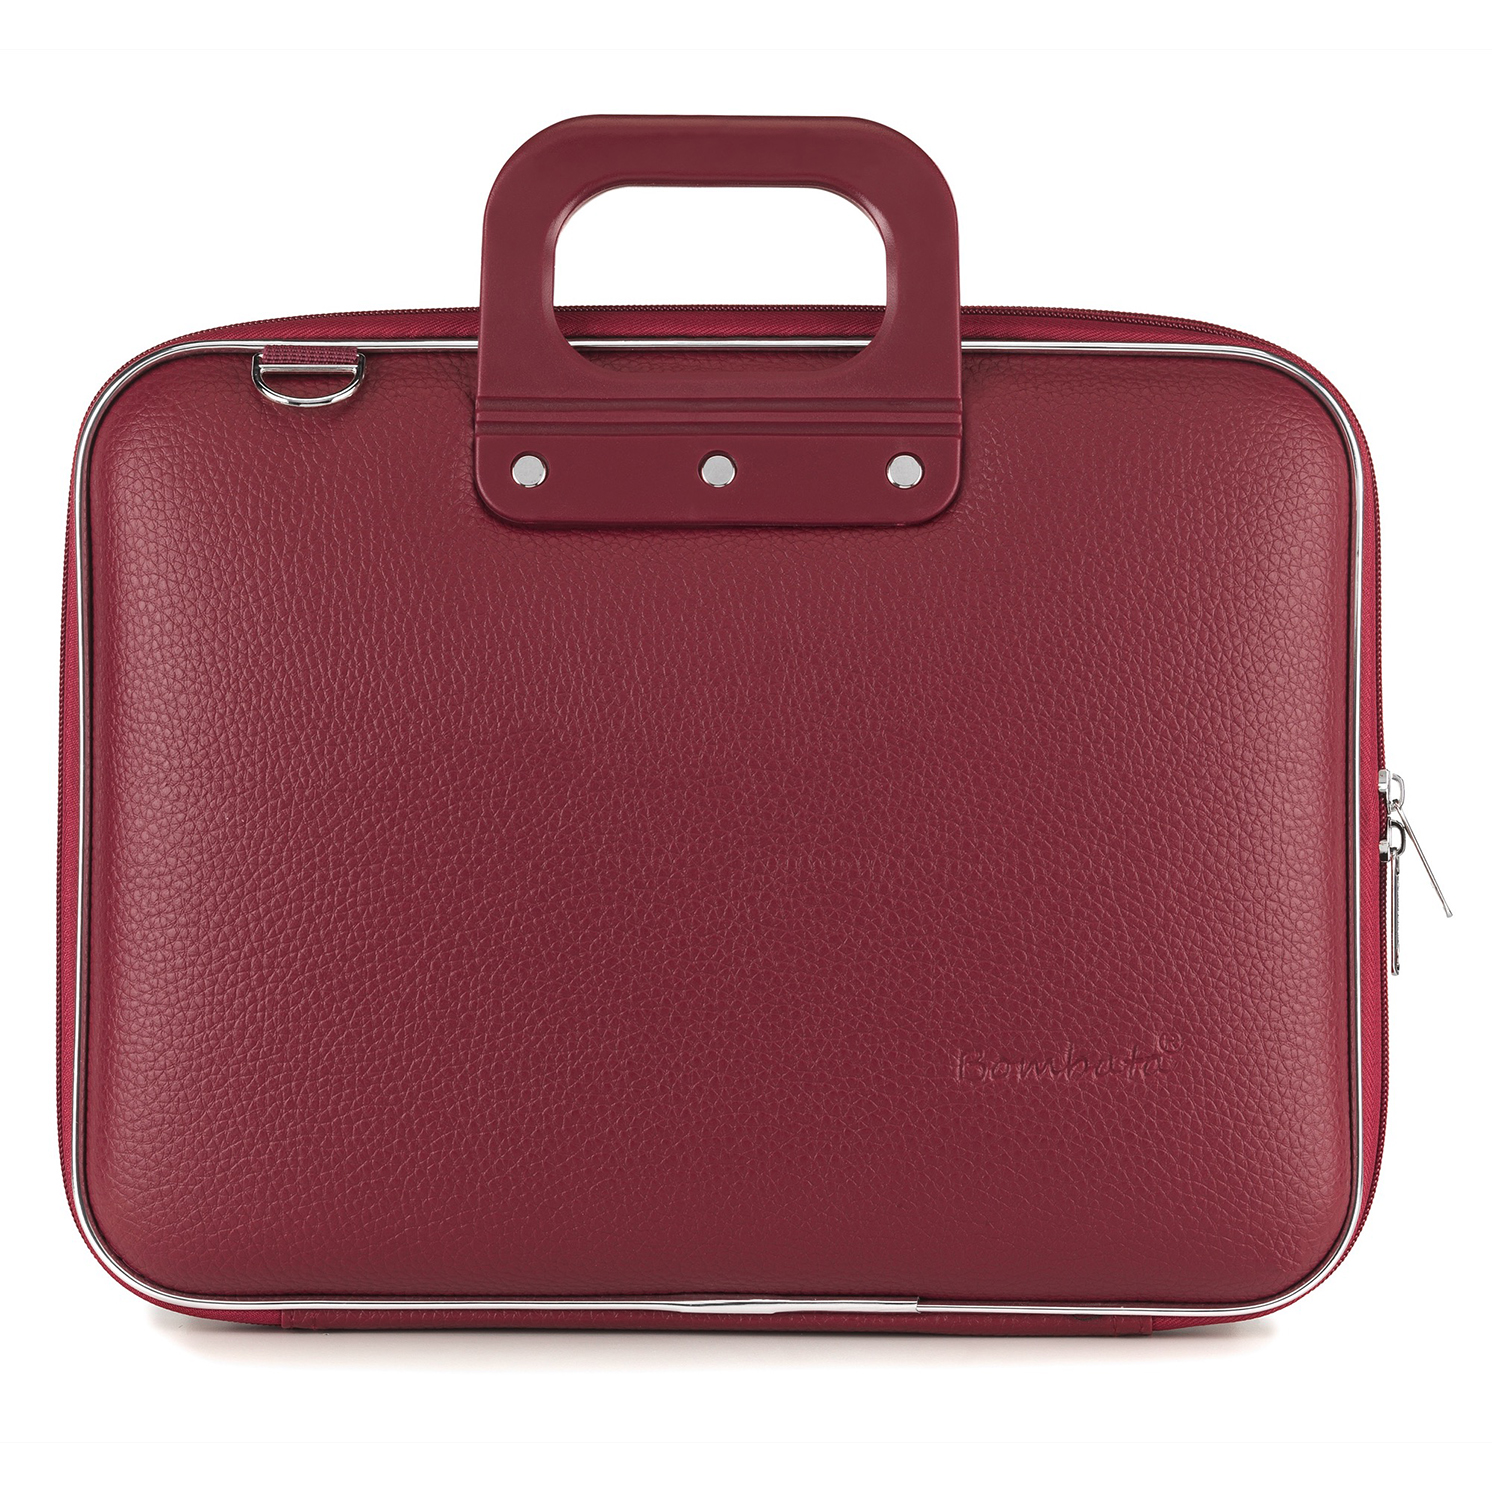 Bombata – Burgundy Red Medio Classic 13″ Laptop Case/Bag with Shoulder Strap